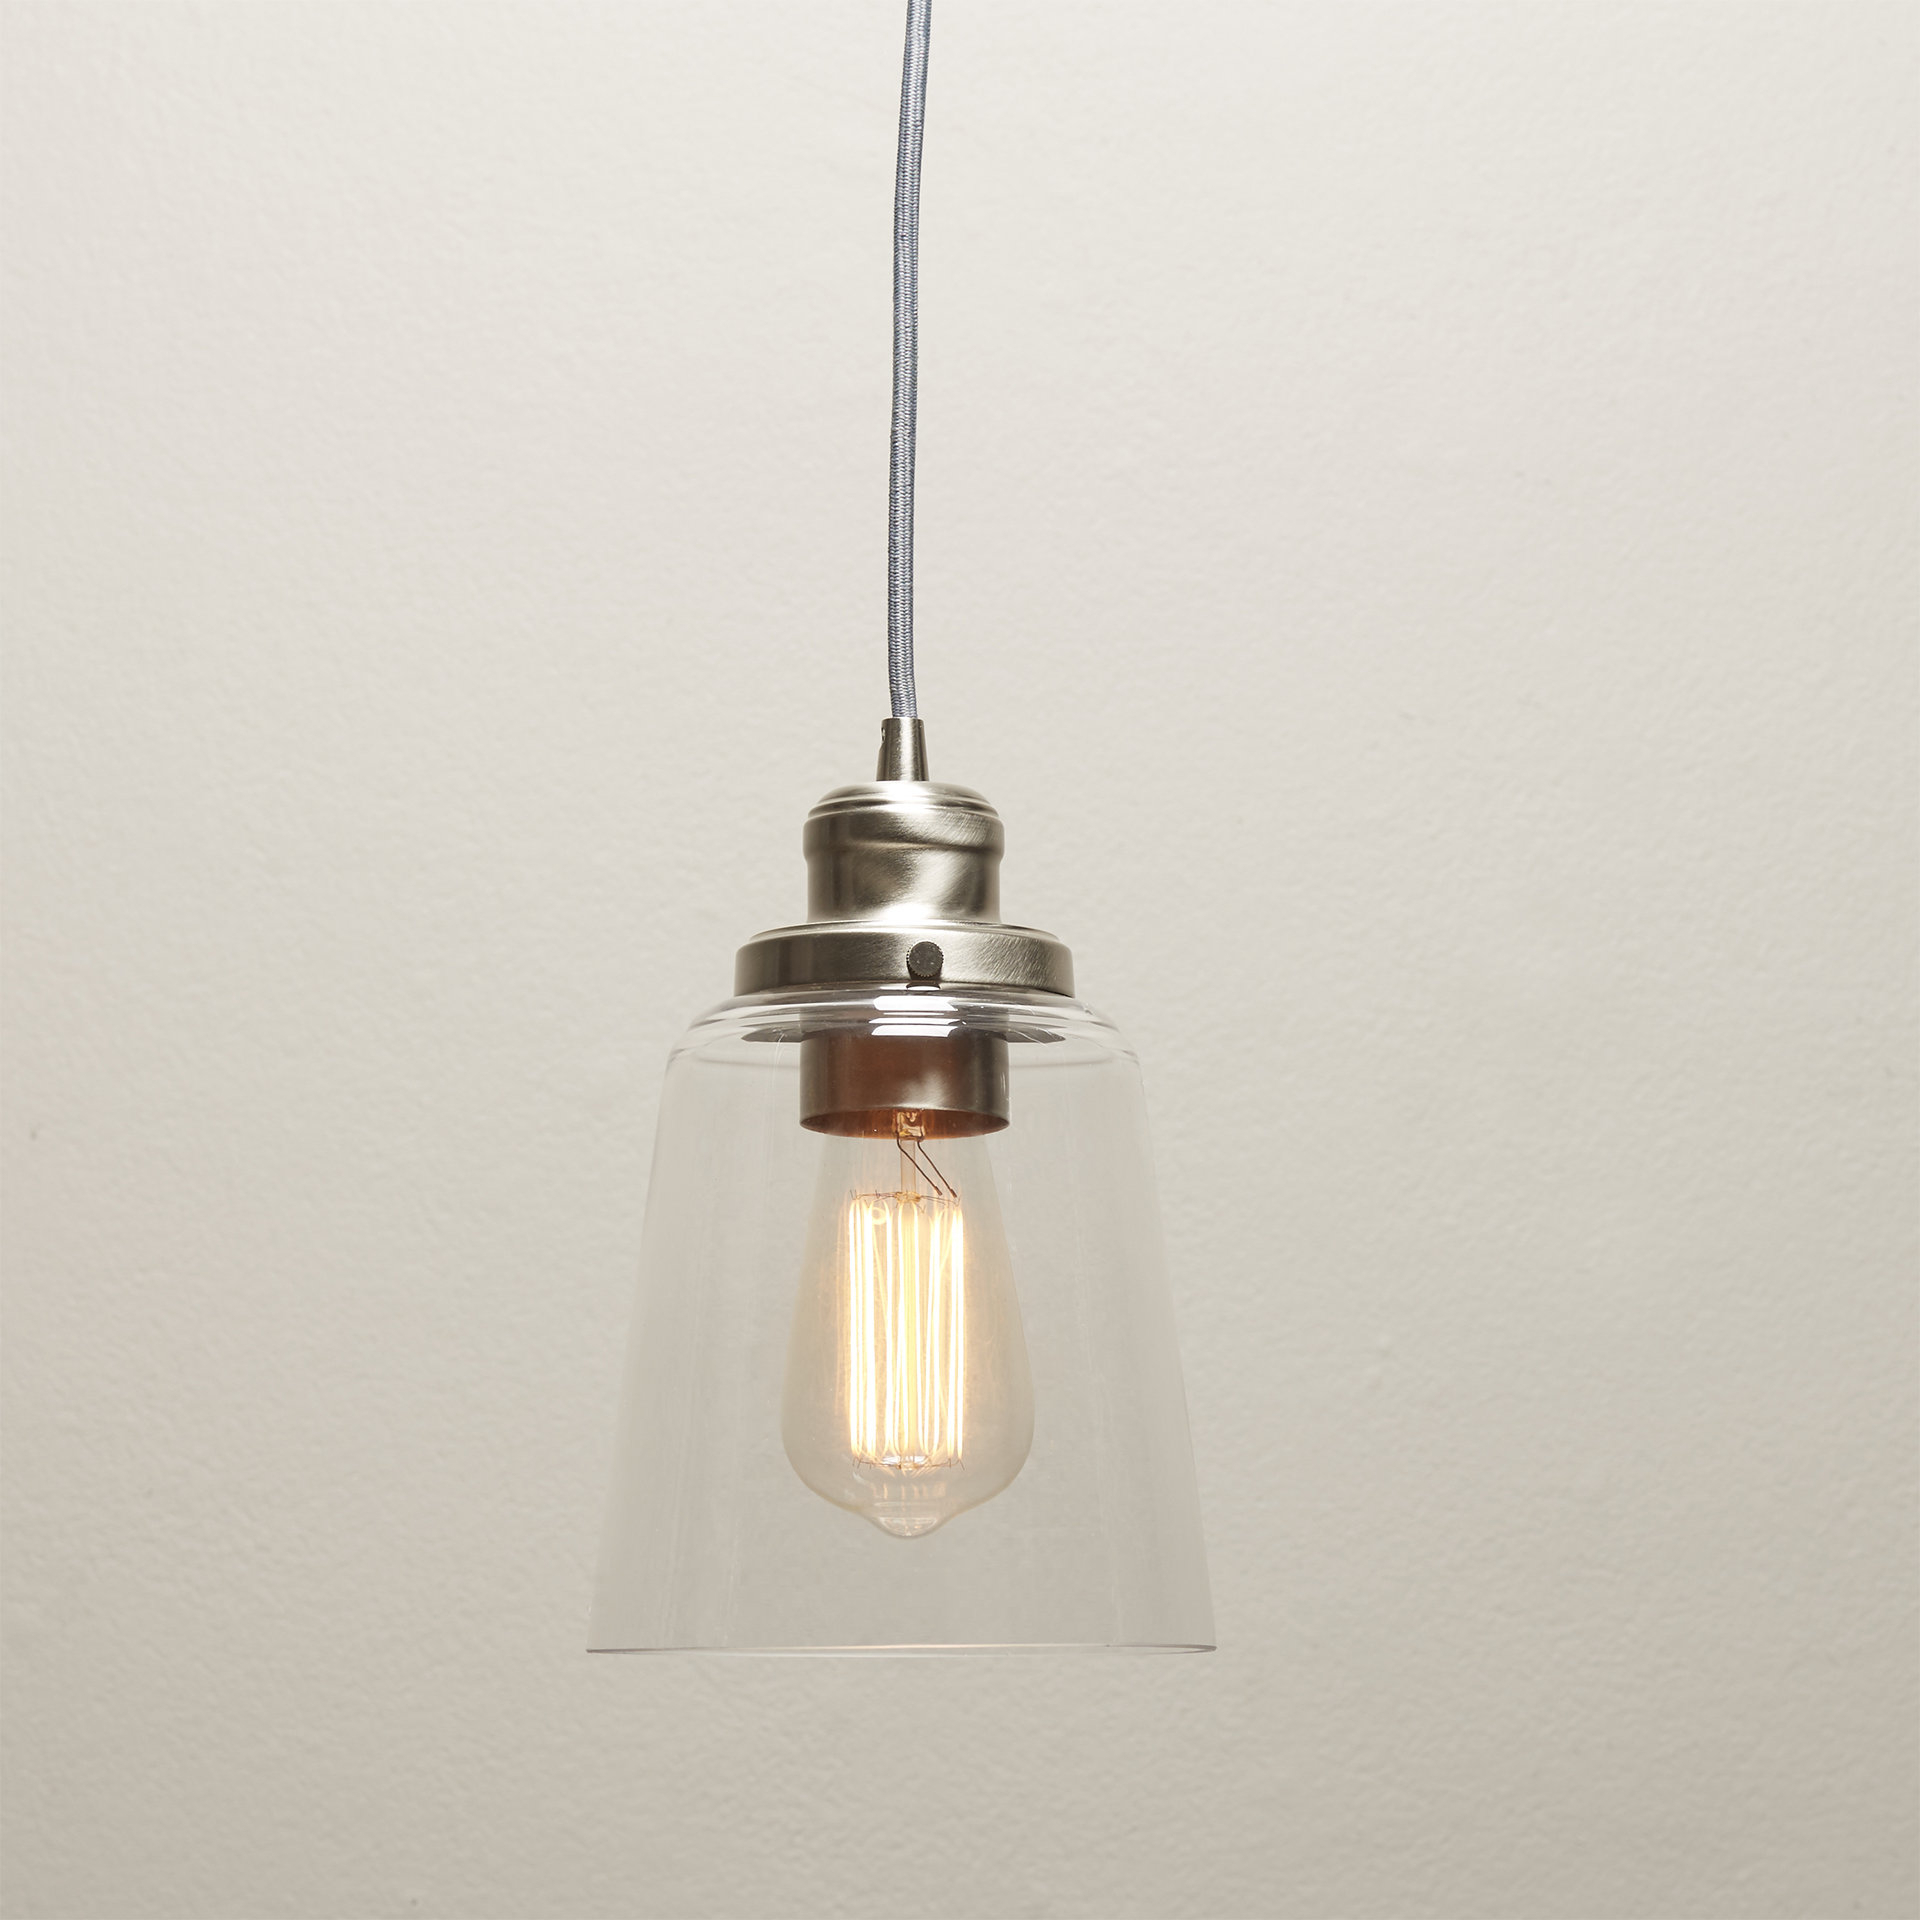 1 Light Single Bell Pendant For Widely Used Houon 1 Light Cone Bell Pendants (Gallery 8 of 25)